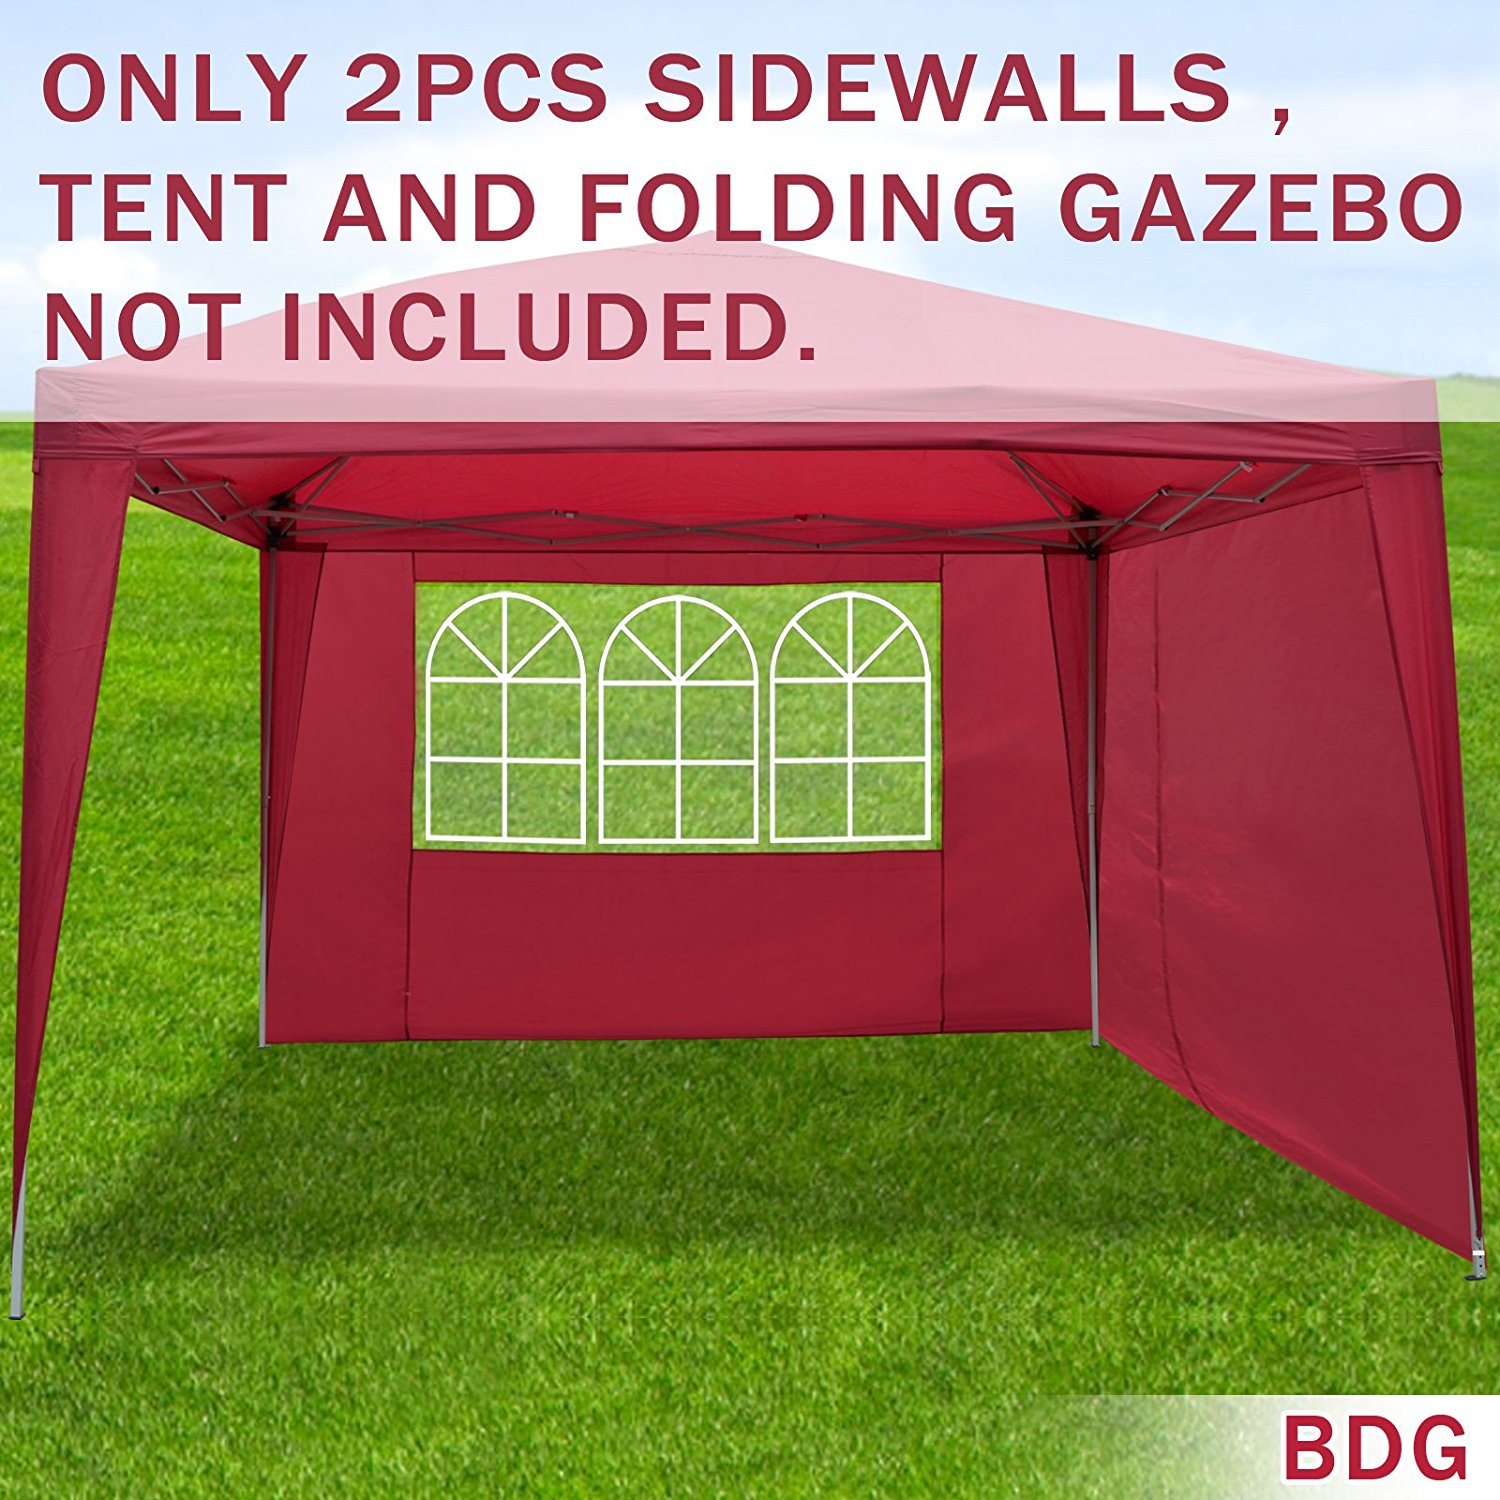 Strong Camel Sidewalls 10u0027X10u0027 Size for Tent Outdoor Pop Up Canopy Gazebo Marquee  sc 1 st  Walmart & Strong Camel Sidewalls 10u0027X10u0027 Size for Tent Outdoor Pop Up Canopy ...